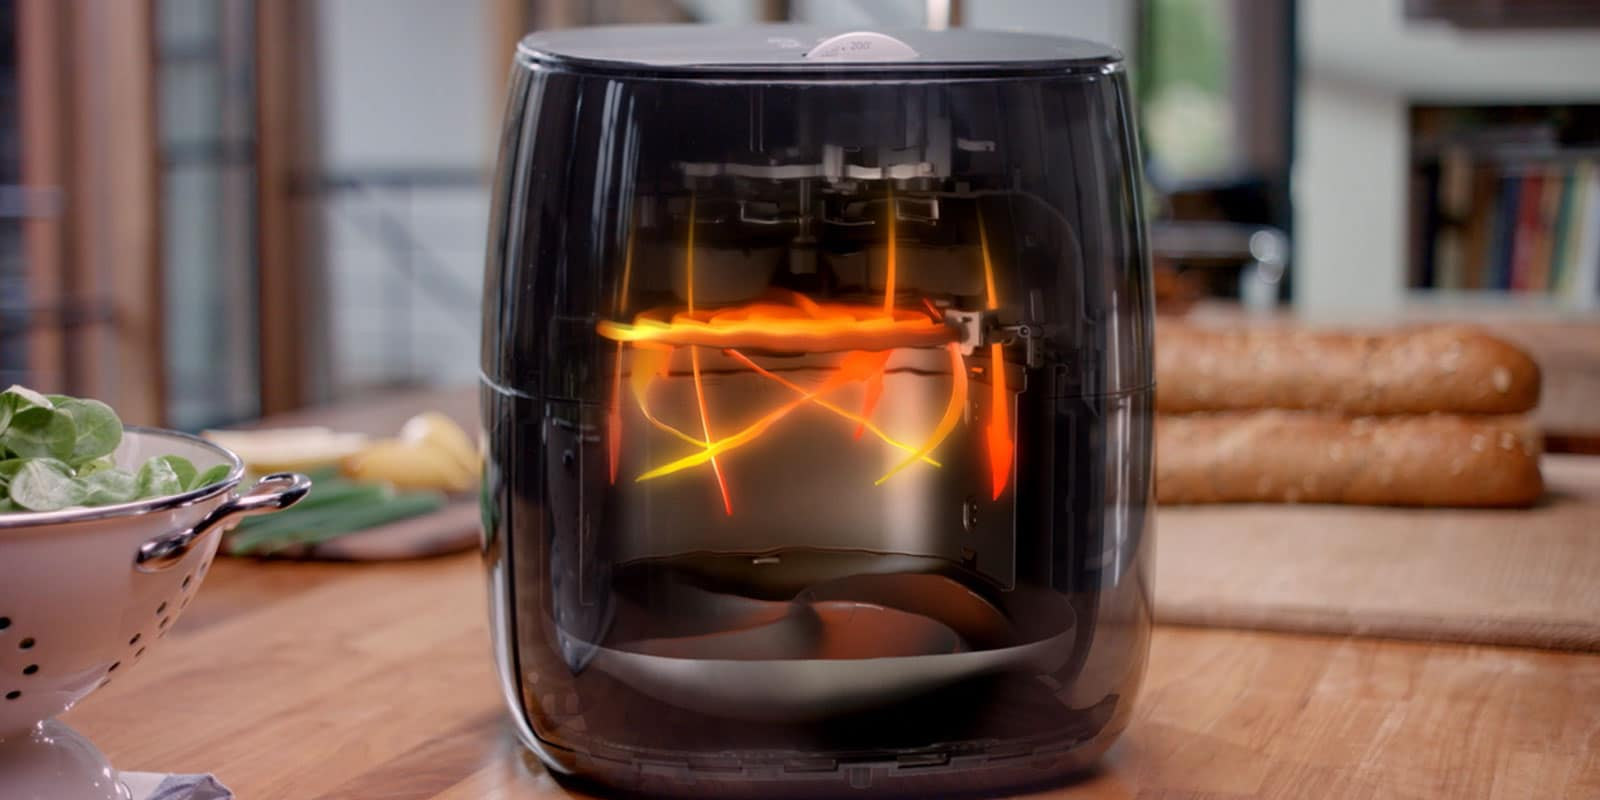 Airfryer Turbostar Technology